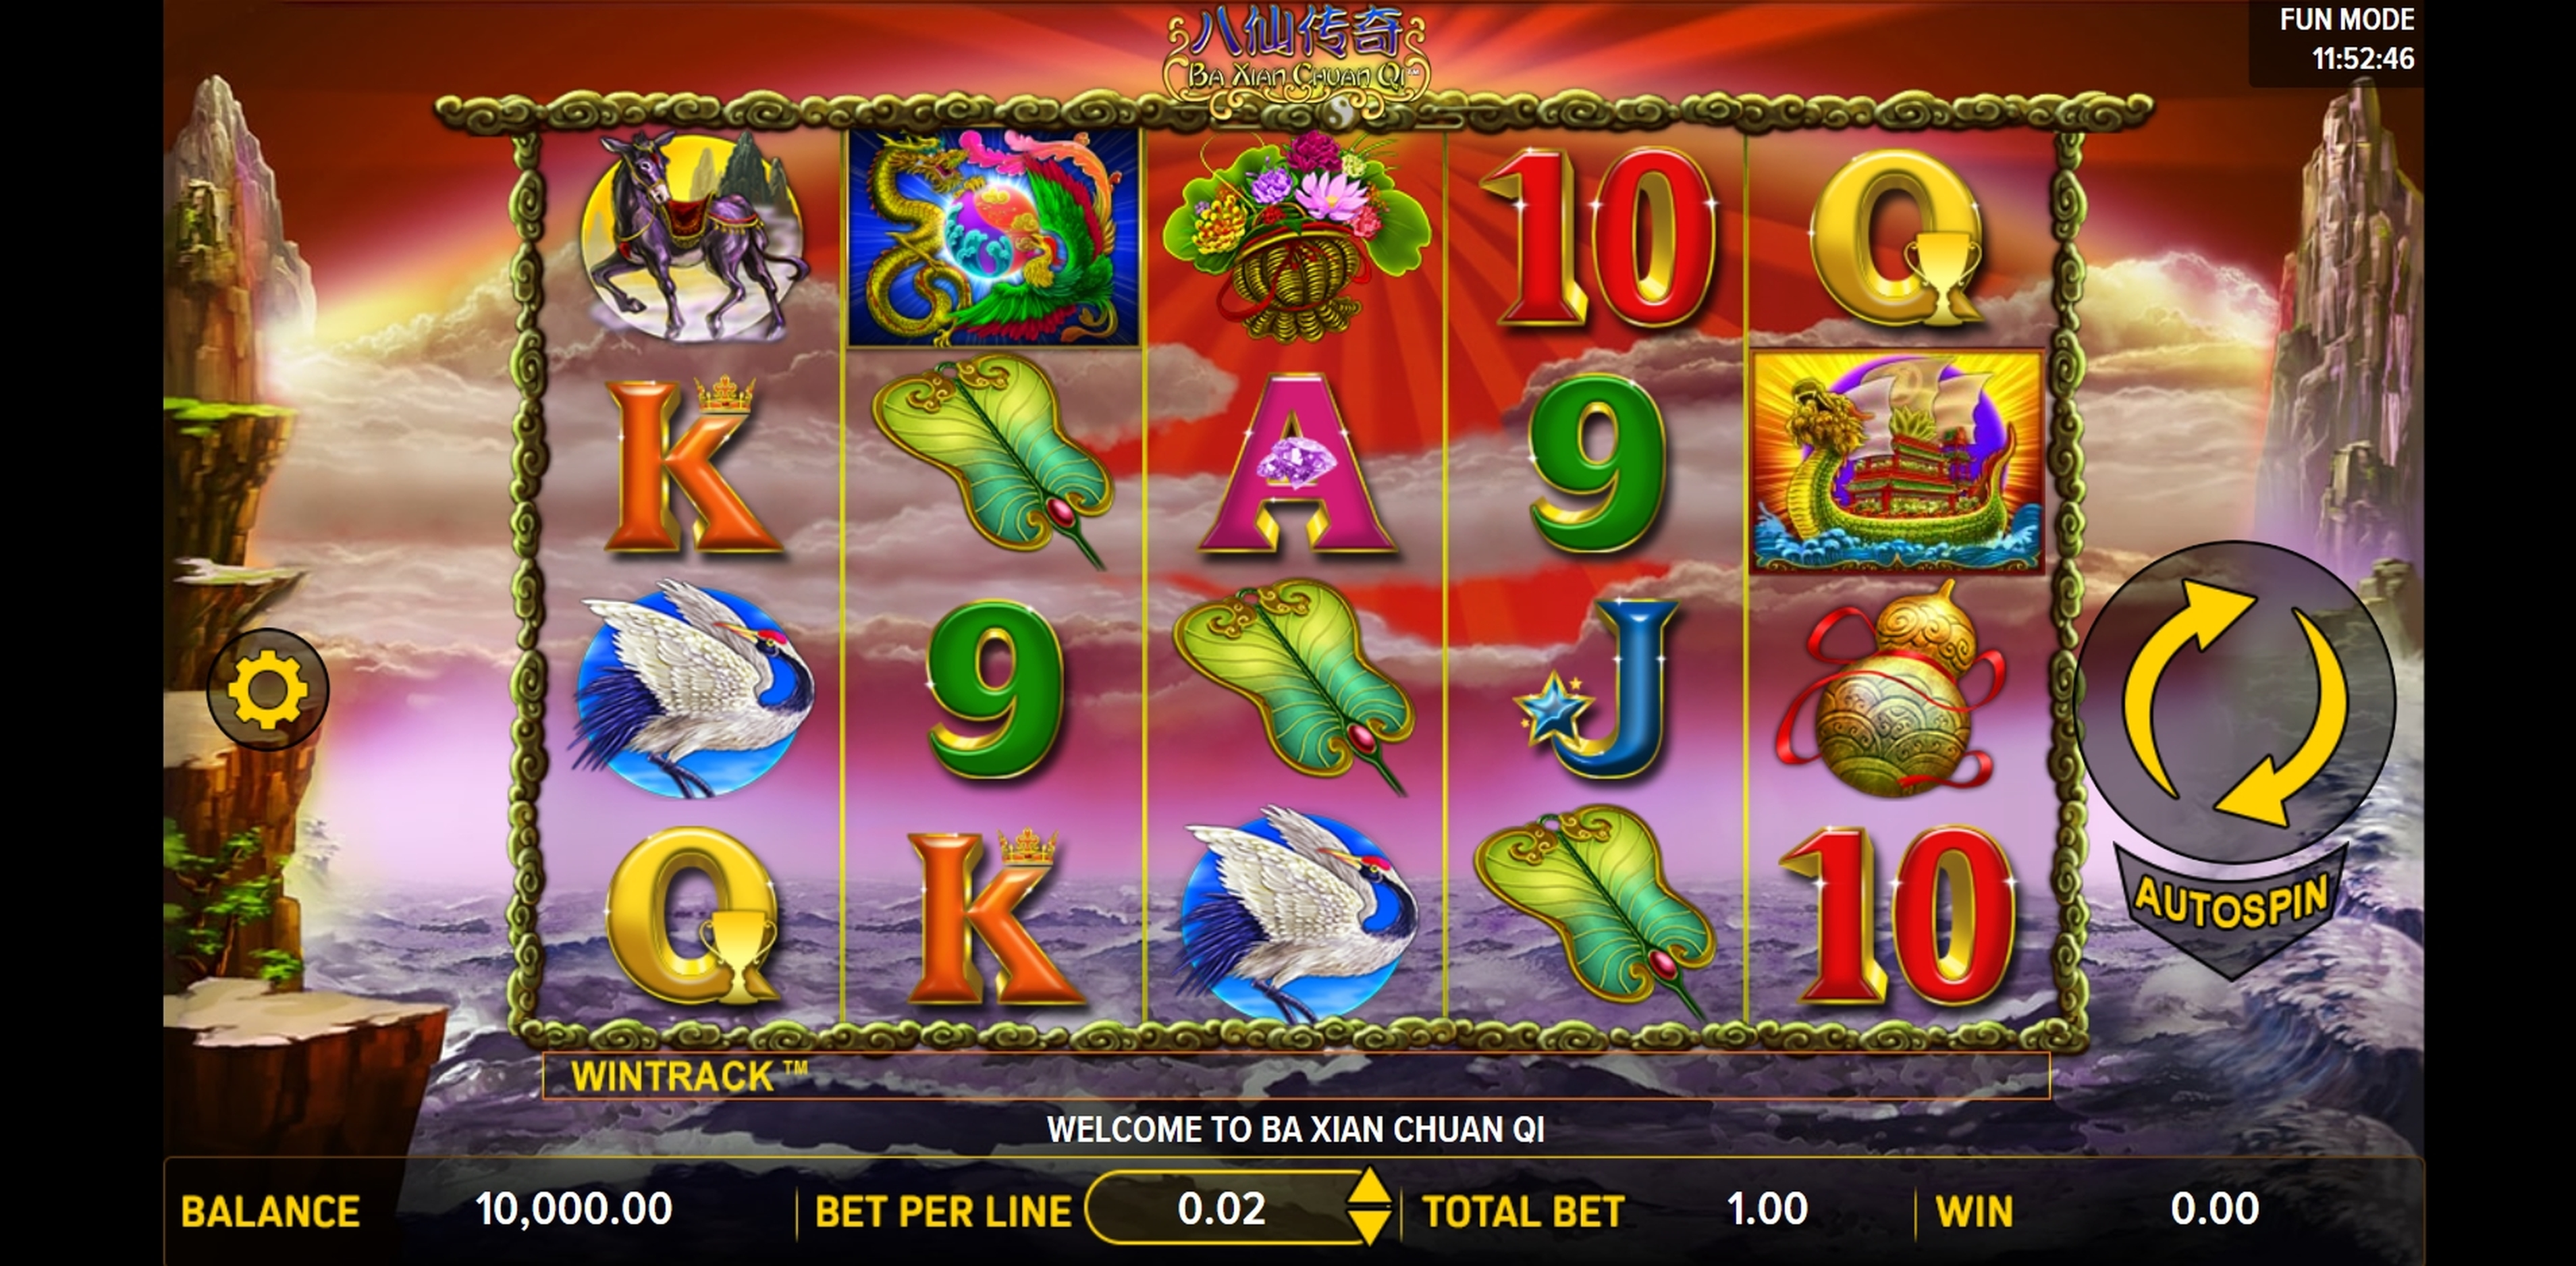 Reels in Ba Xian Chuan Qi Slot Game by Aspect Gaming